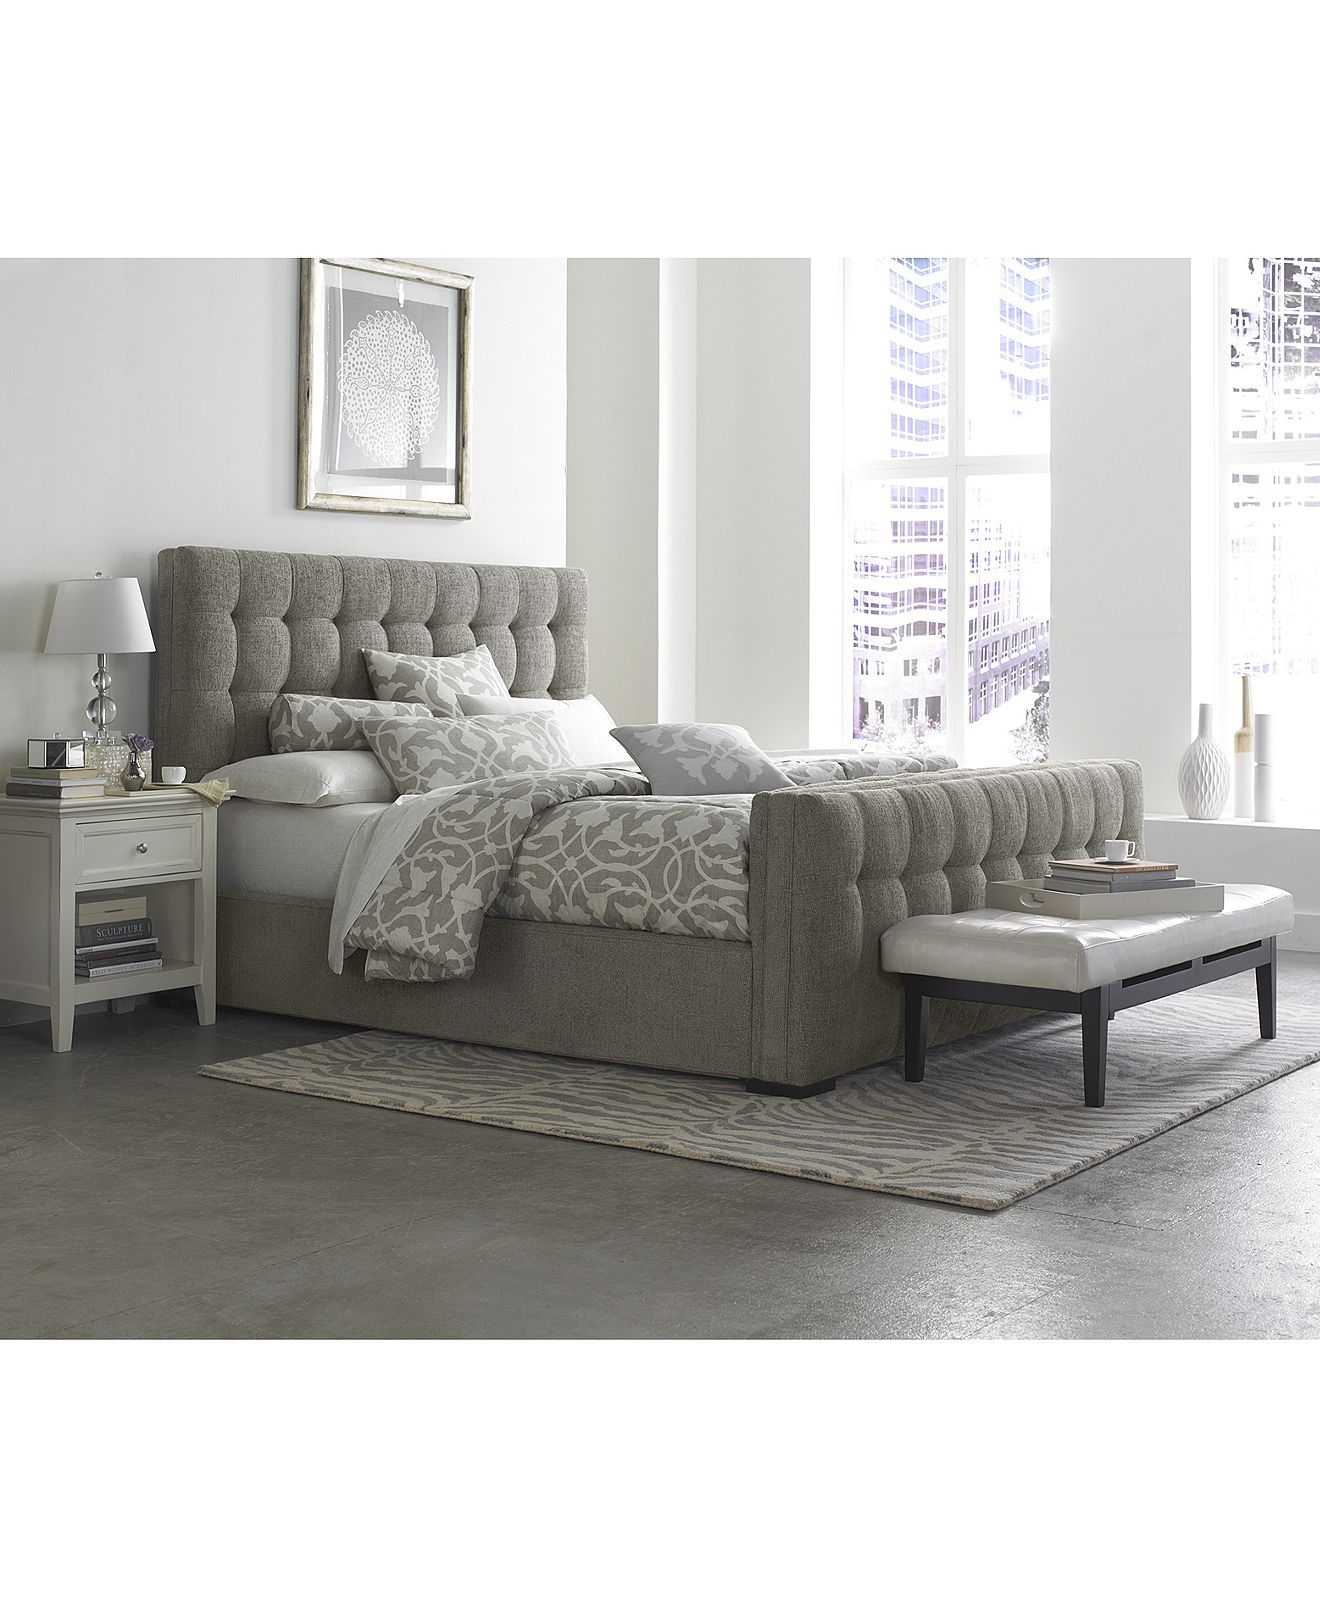 Roslyn Bedroom Furniture Set In The Bedroom Grey Bedroom